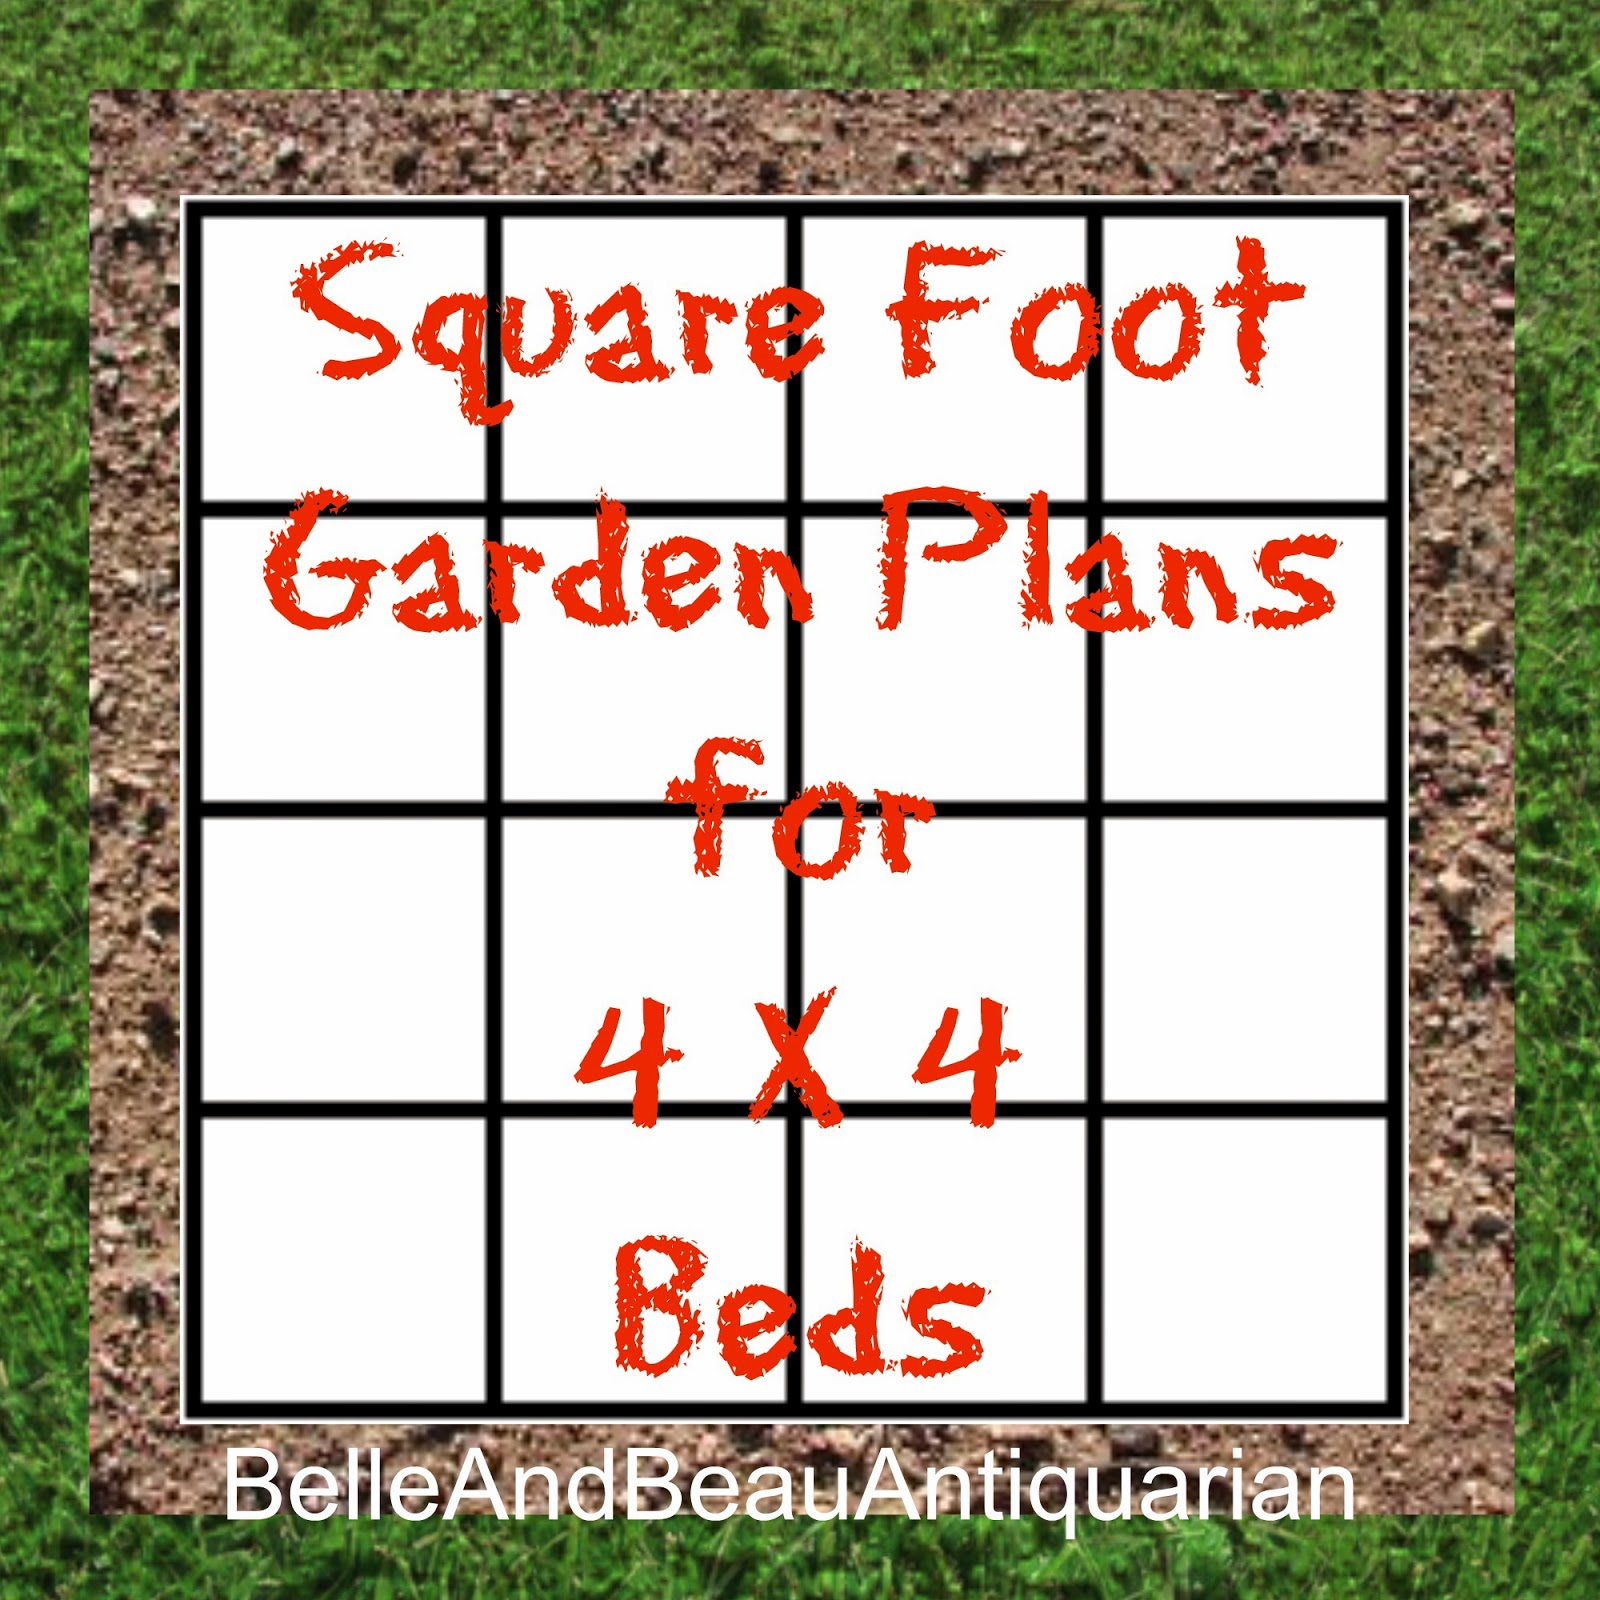 Belle beau antiquarian square foot garden plans for 4 x for Square foot garden designs